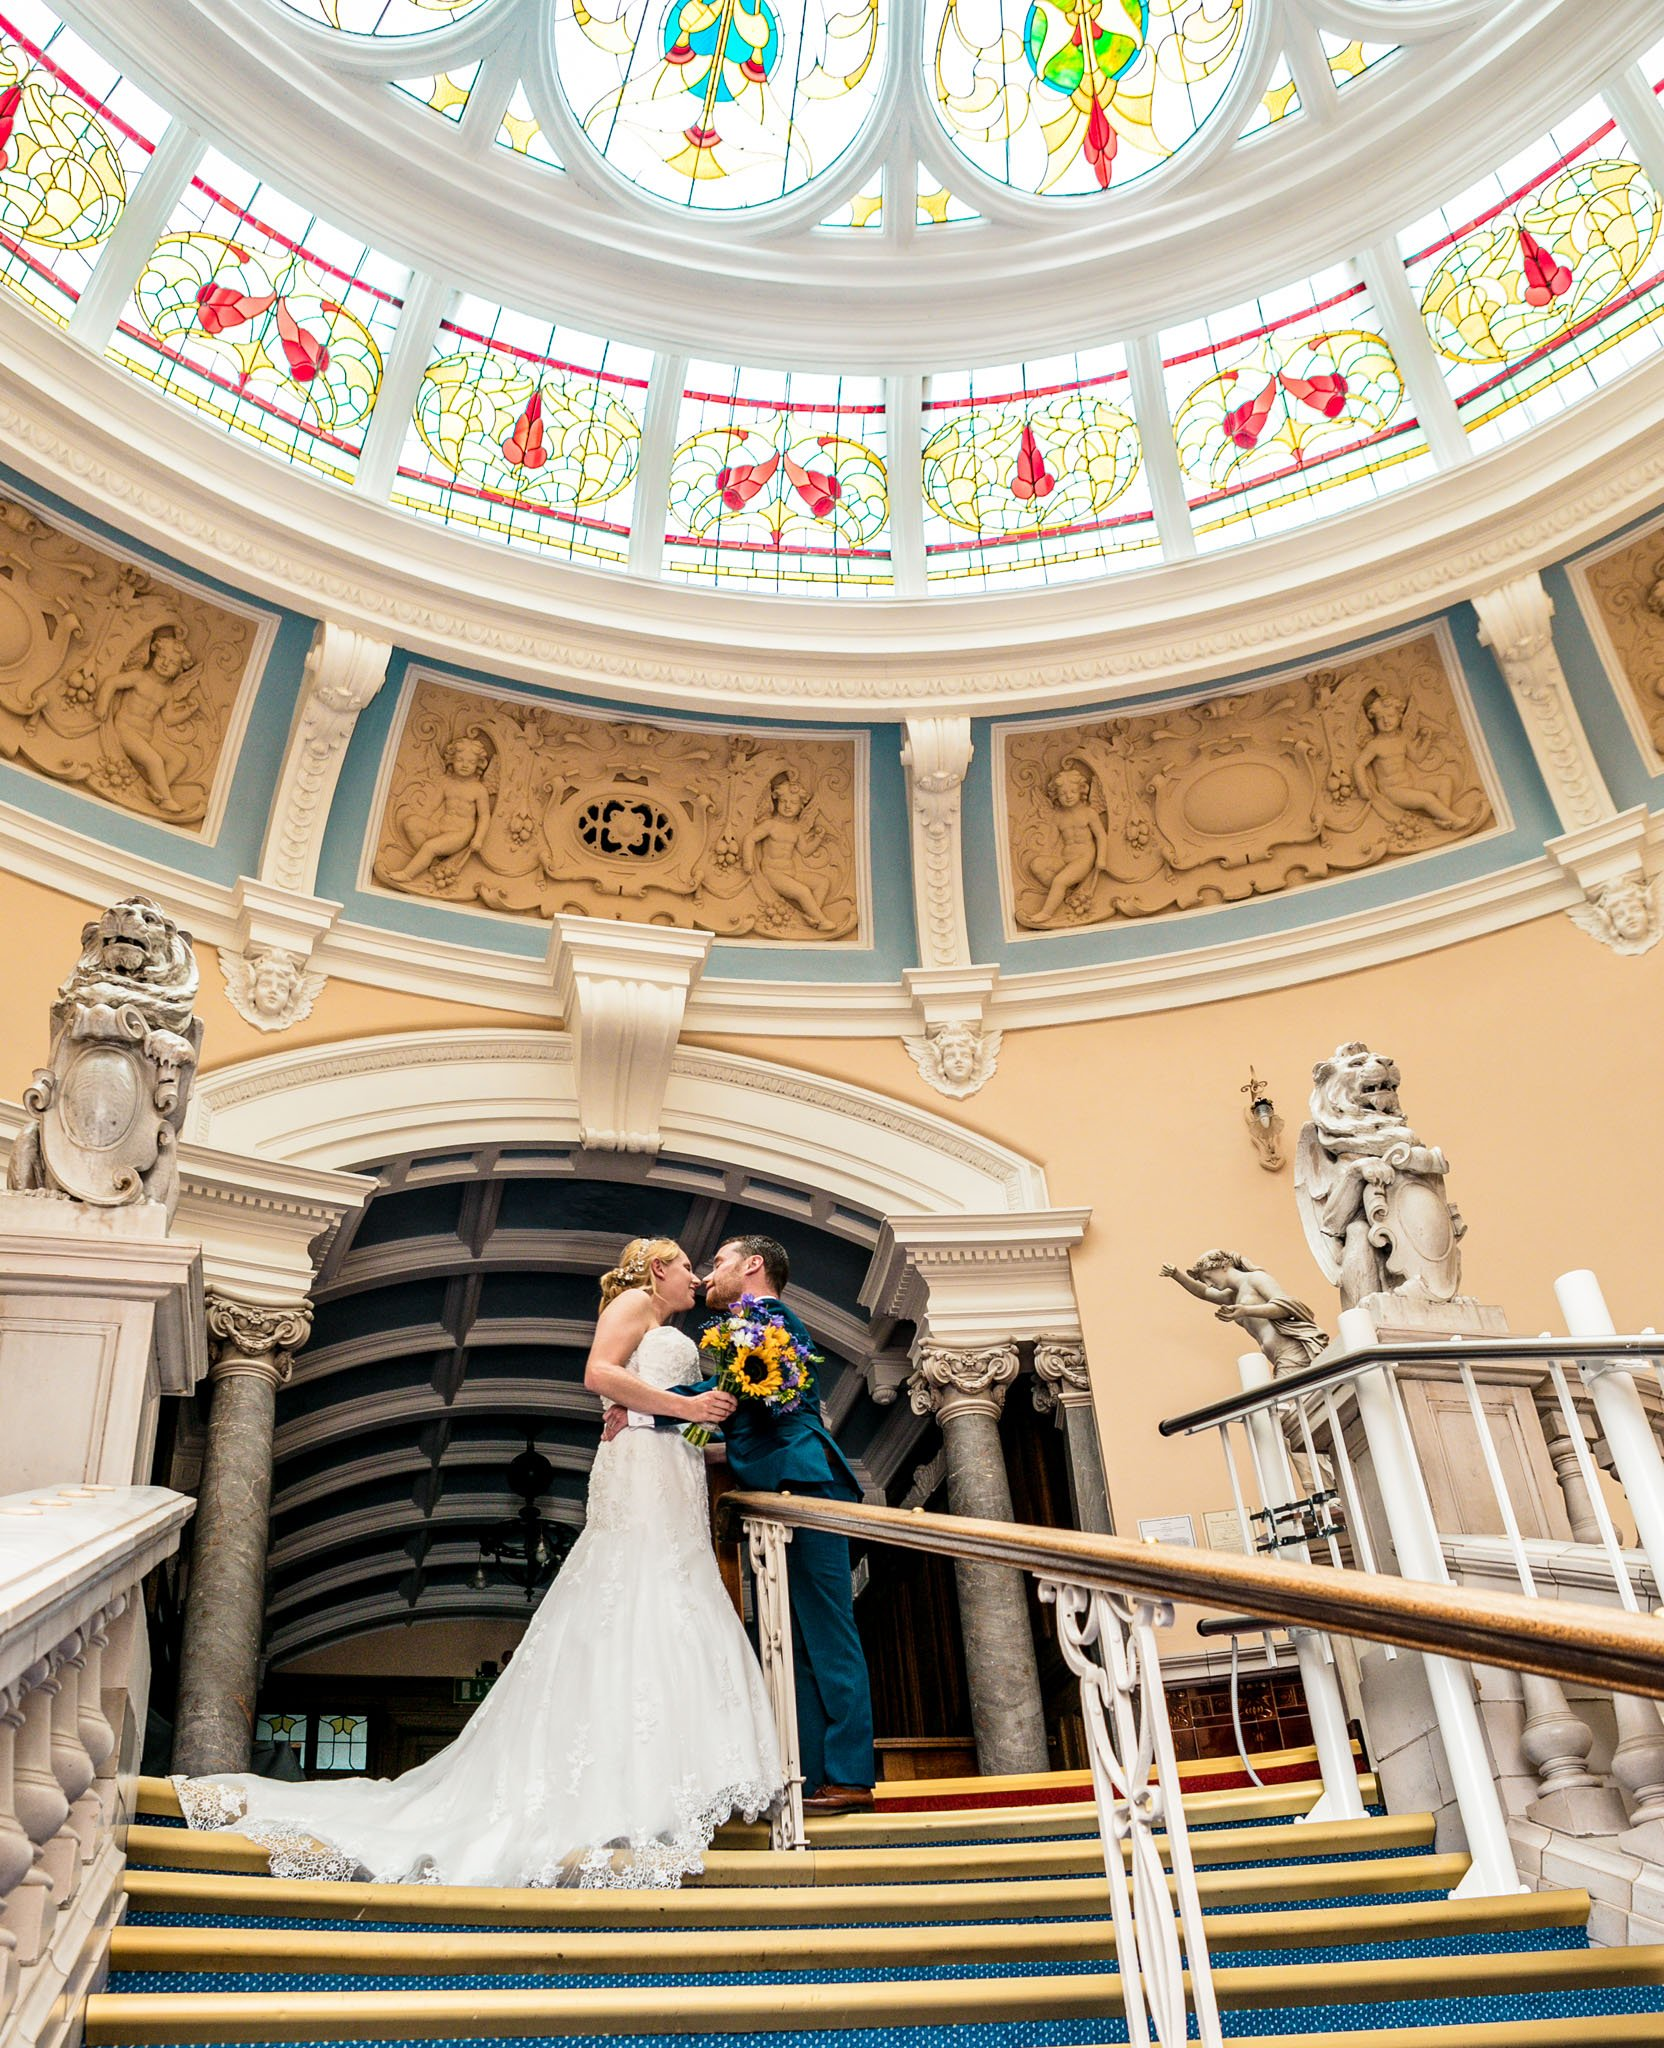 Wedding of Jennie & Brendan, Hereford Town Hall, Tania Miller Photography, Hereford Wedding Photographer